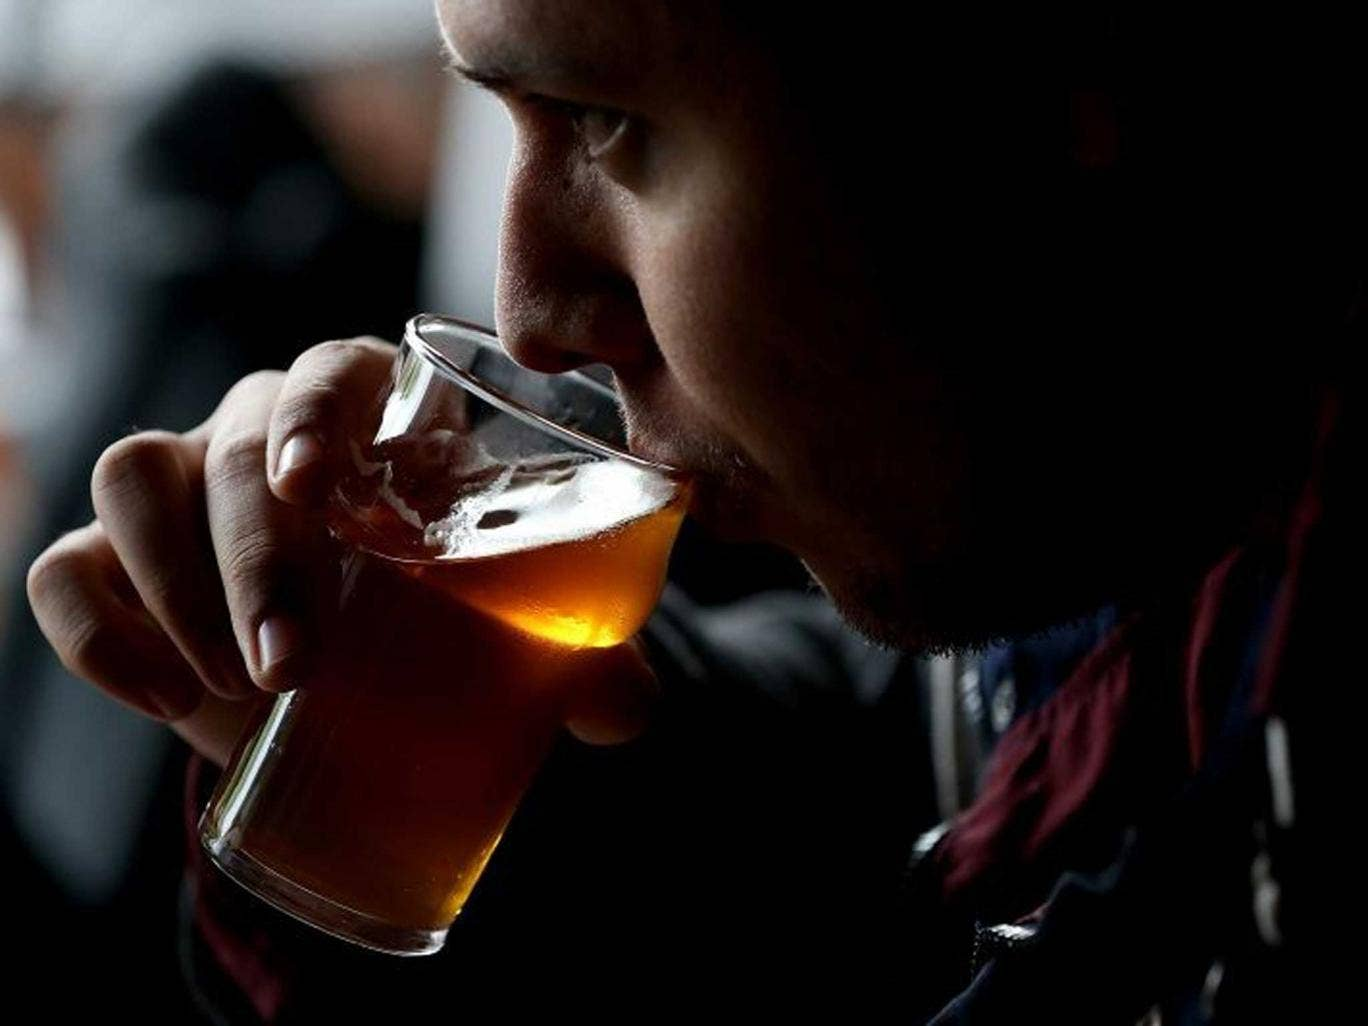 Obesity surgery in rats has been found to change the way the body processes alcohol